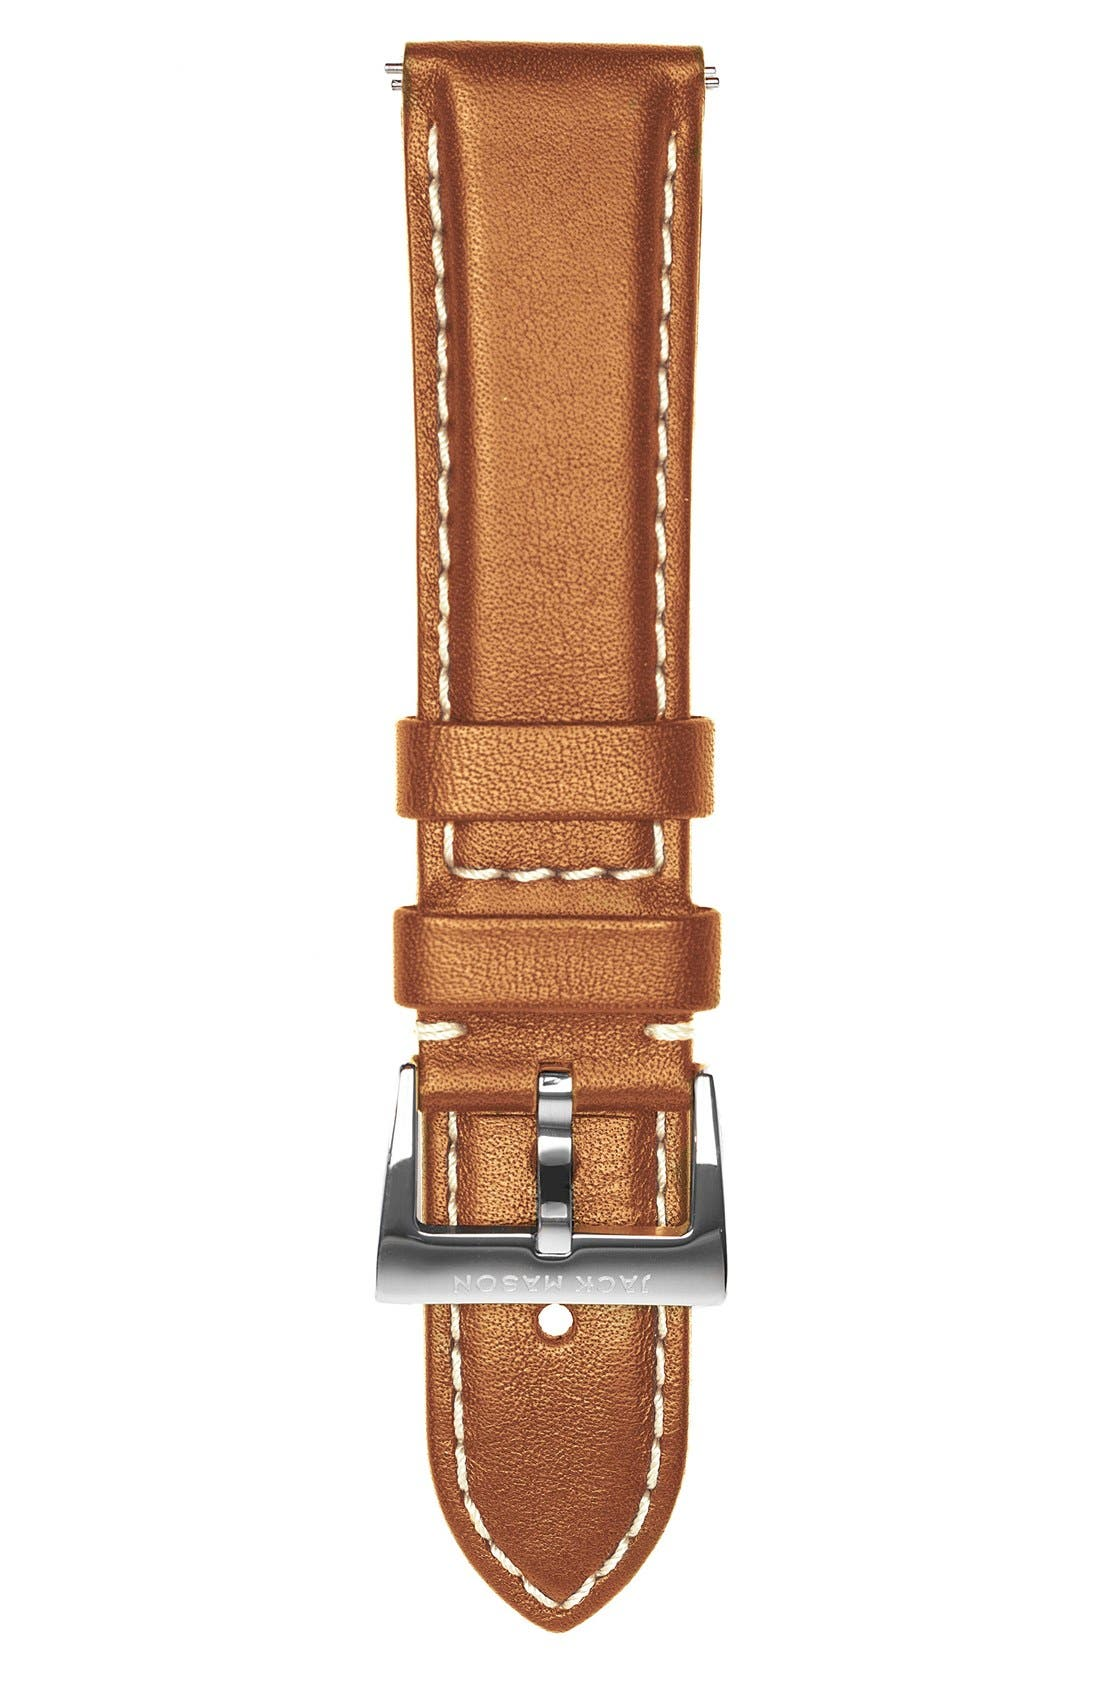 JACK MASON Leather Watch Strap, 22mm